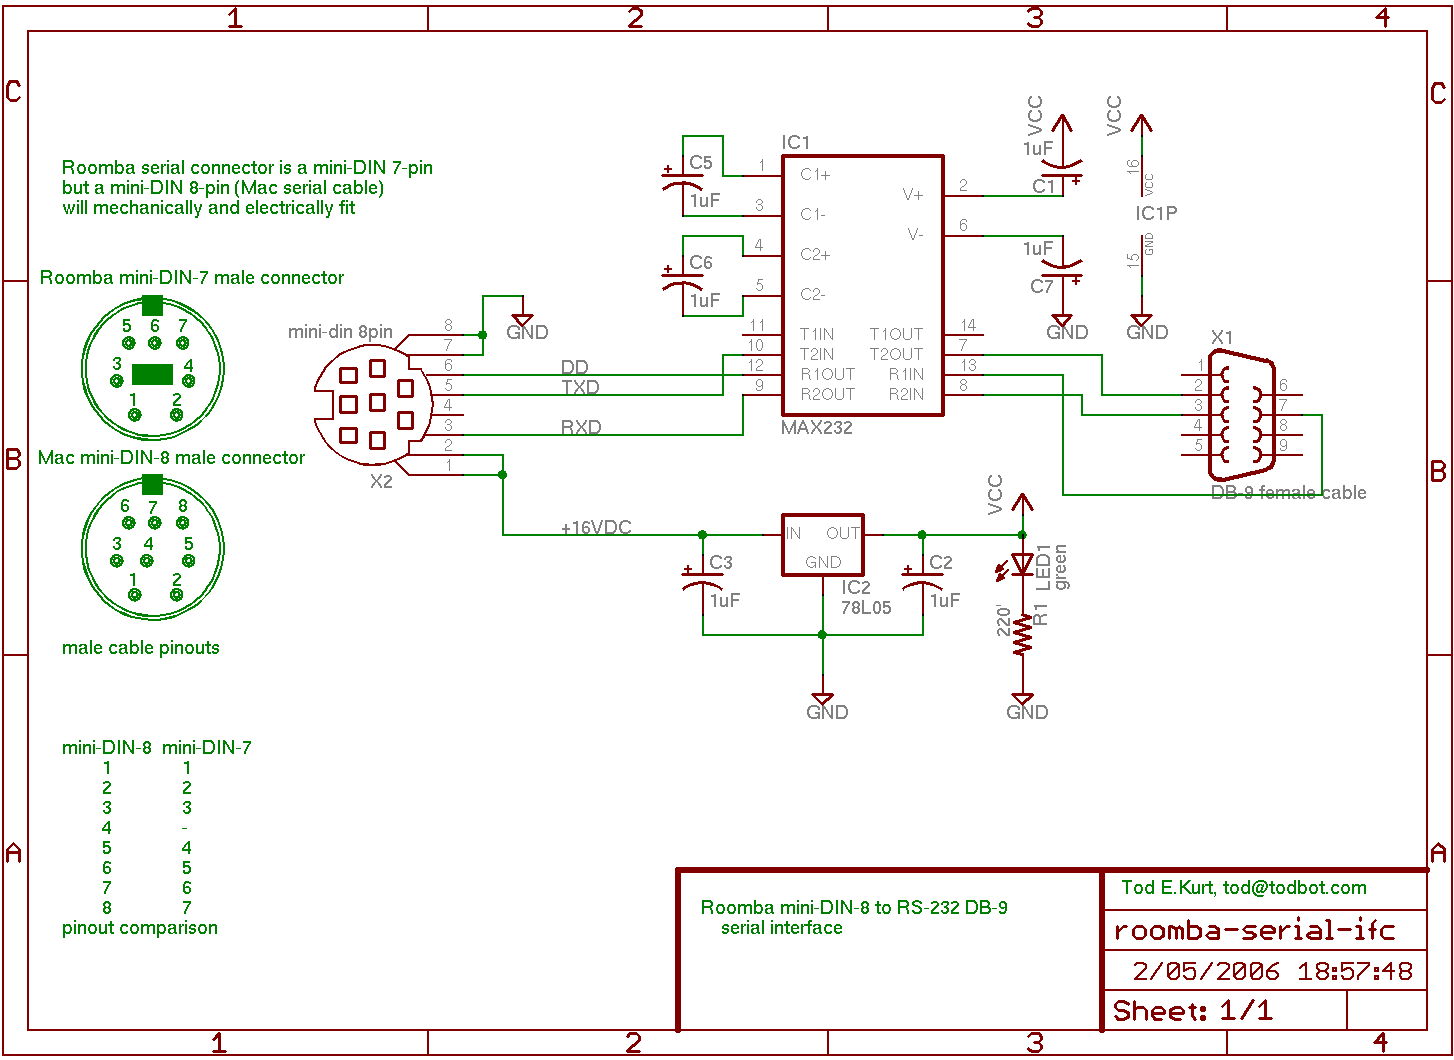 All Sizes Roomba Serial Interface Schematic Flickr Photo Sharing Usb Download The Original Size Of This